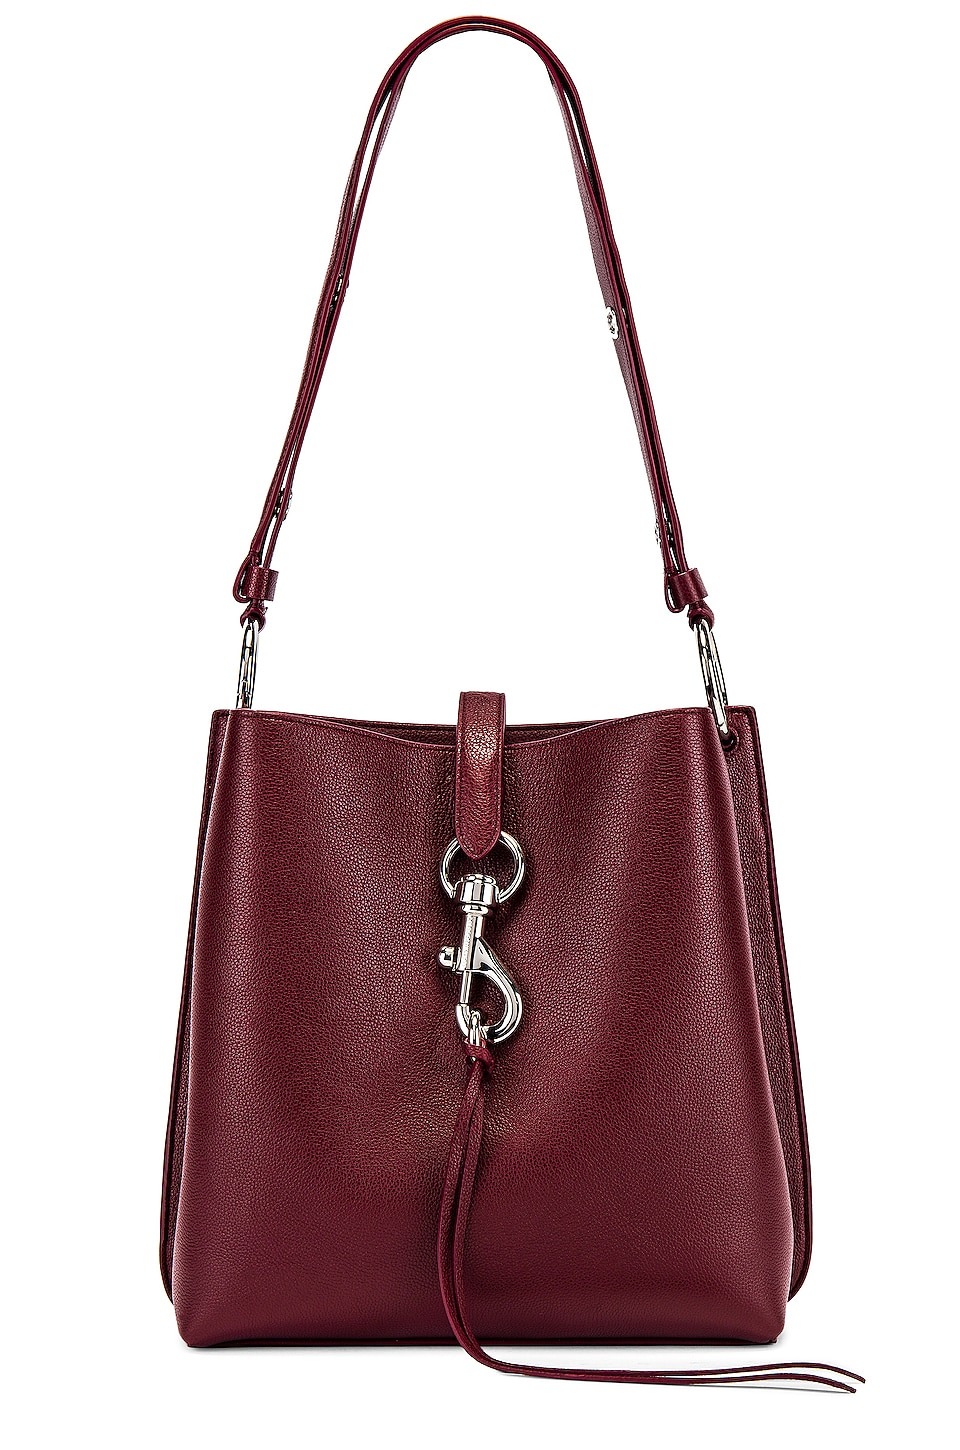 Rebecca Minkoff Megan Shoulder Bag in Pino Noir